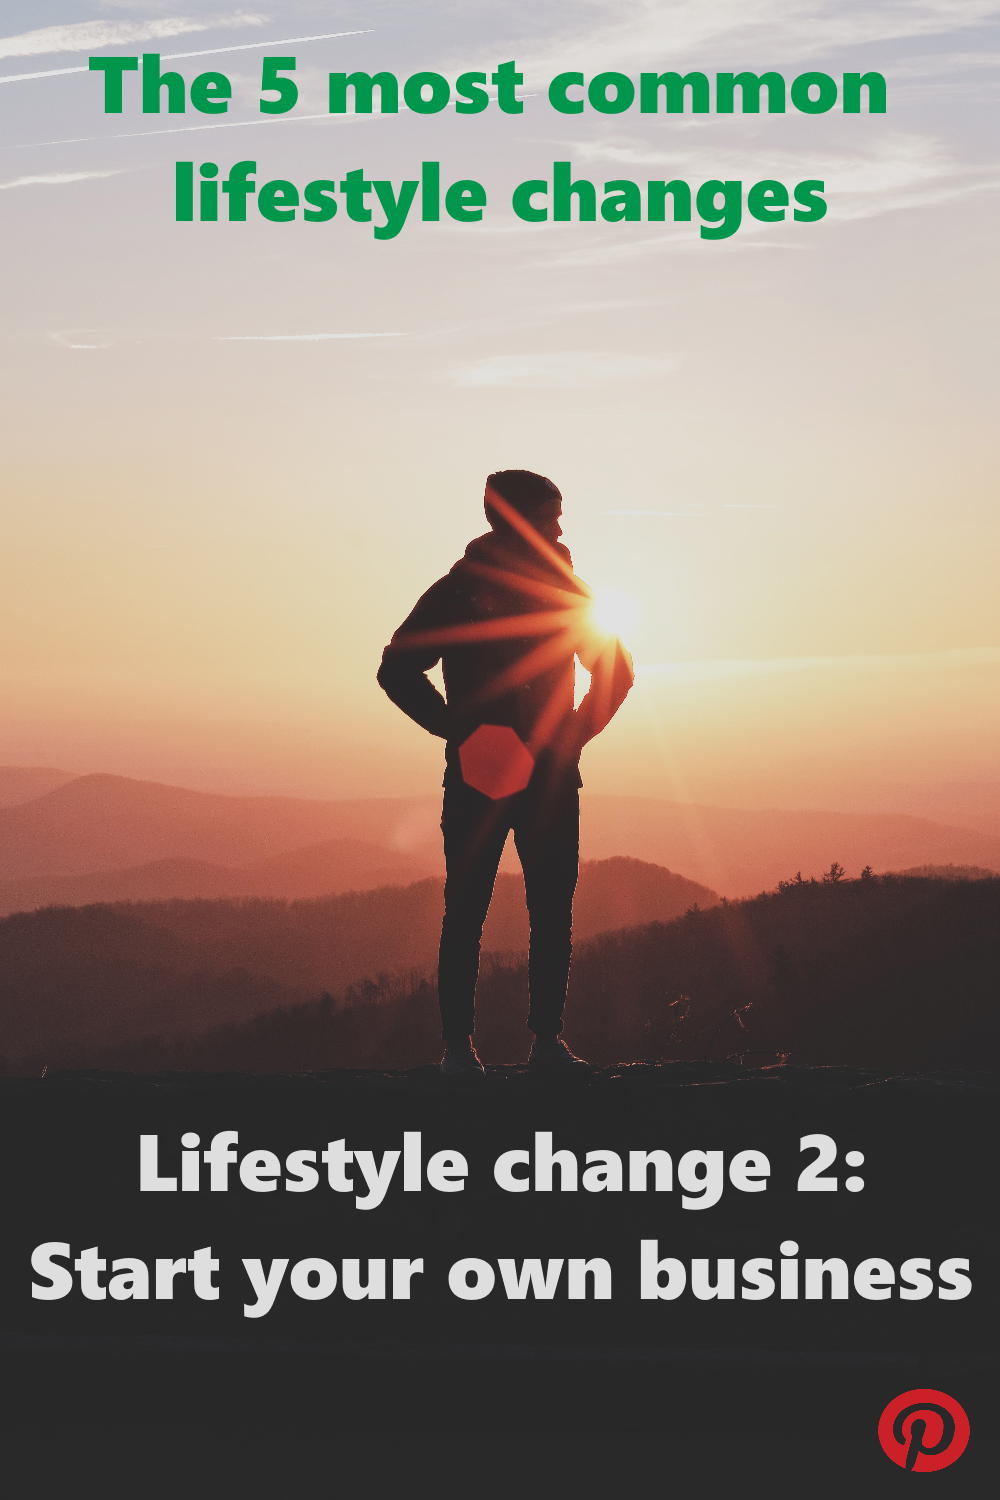 The 5 most common lifestyle changes - #2 Starting your own business